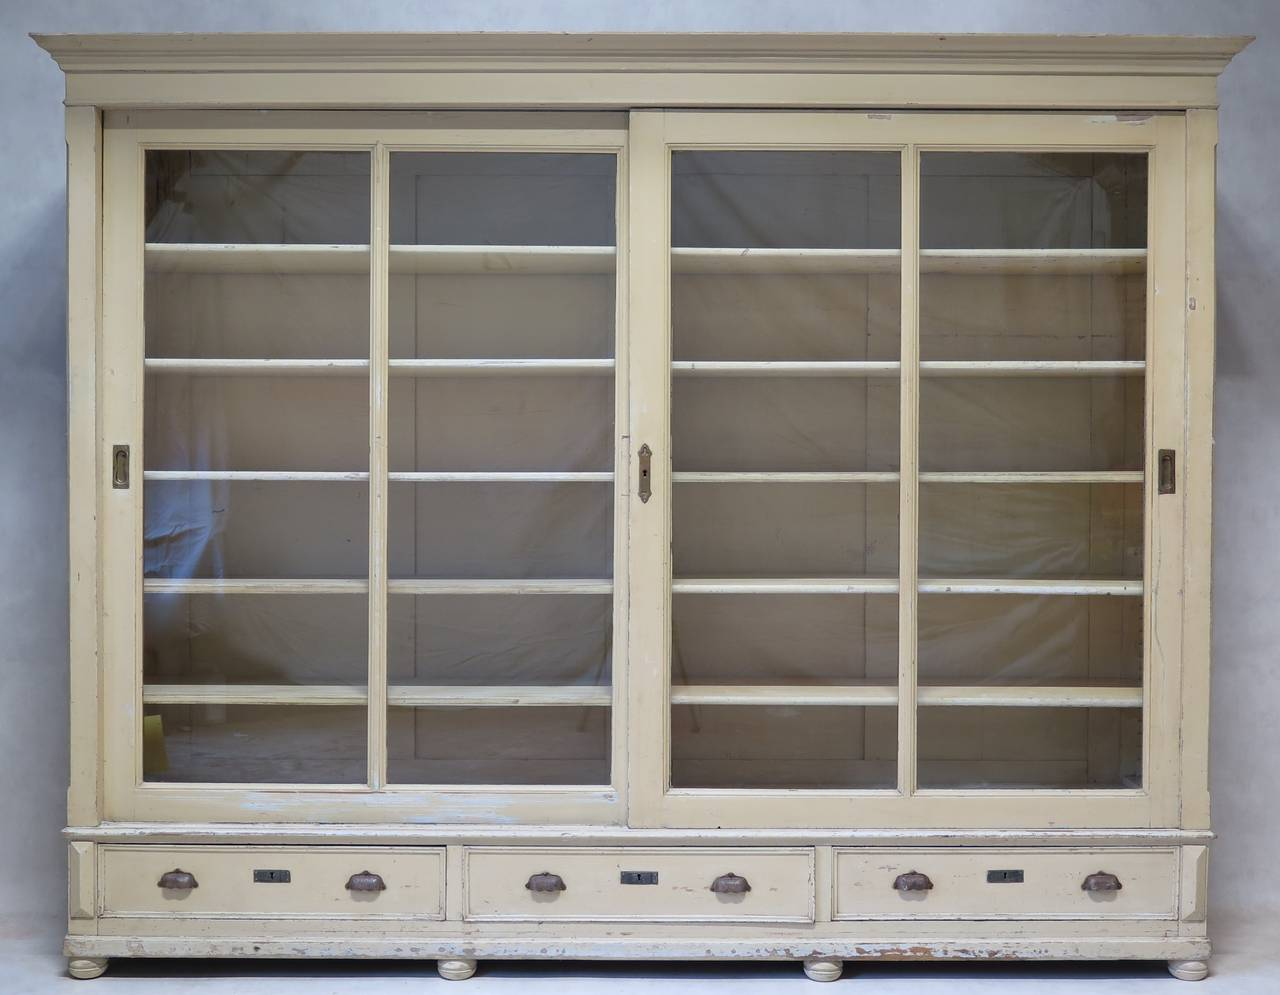 Elegant Bookcase with Sliding Glass Doors, France, Early 20th Century 2 - Elegant Bookcase With Sliding Glass Doors, France, Early 20th